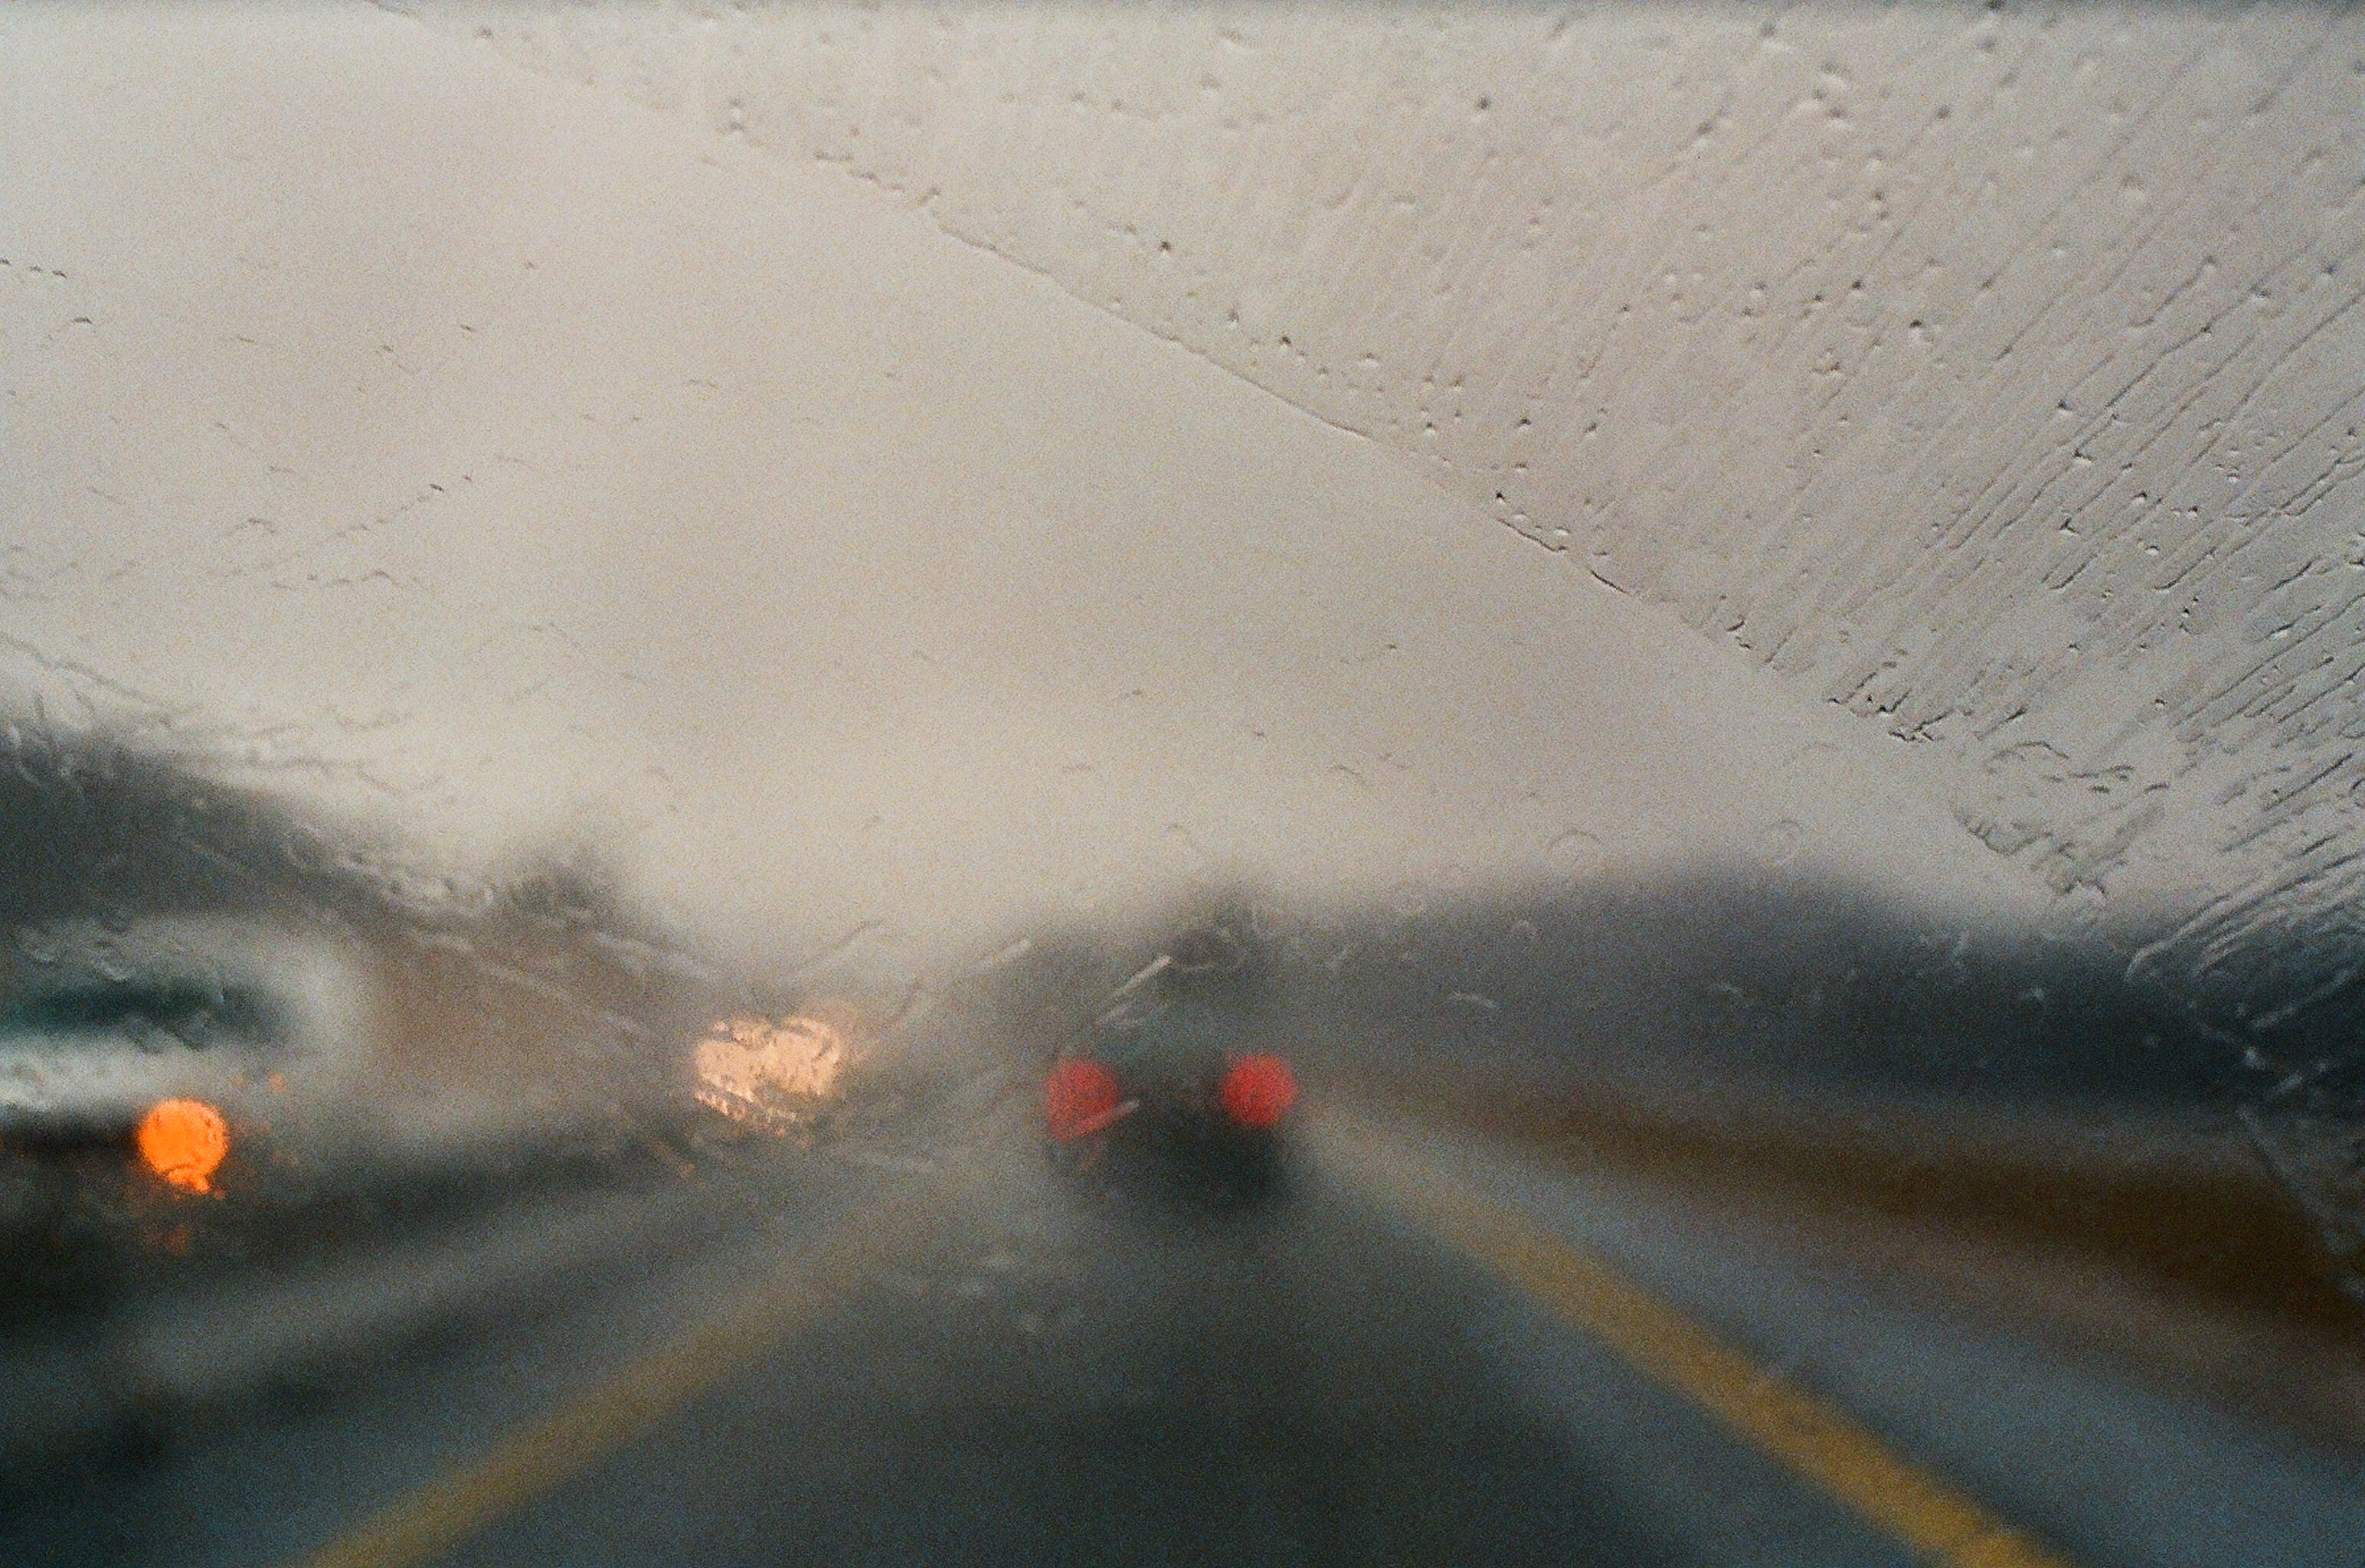 Car taillights through a blurry wet windshield during a rainstorm.